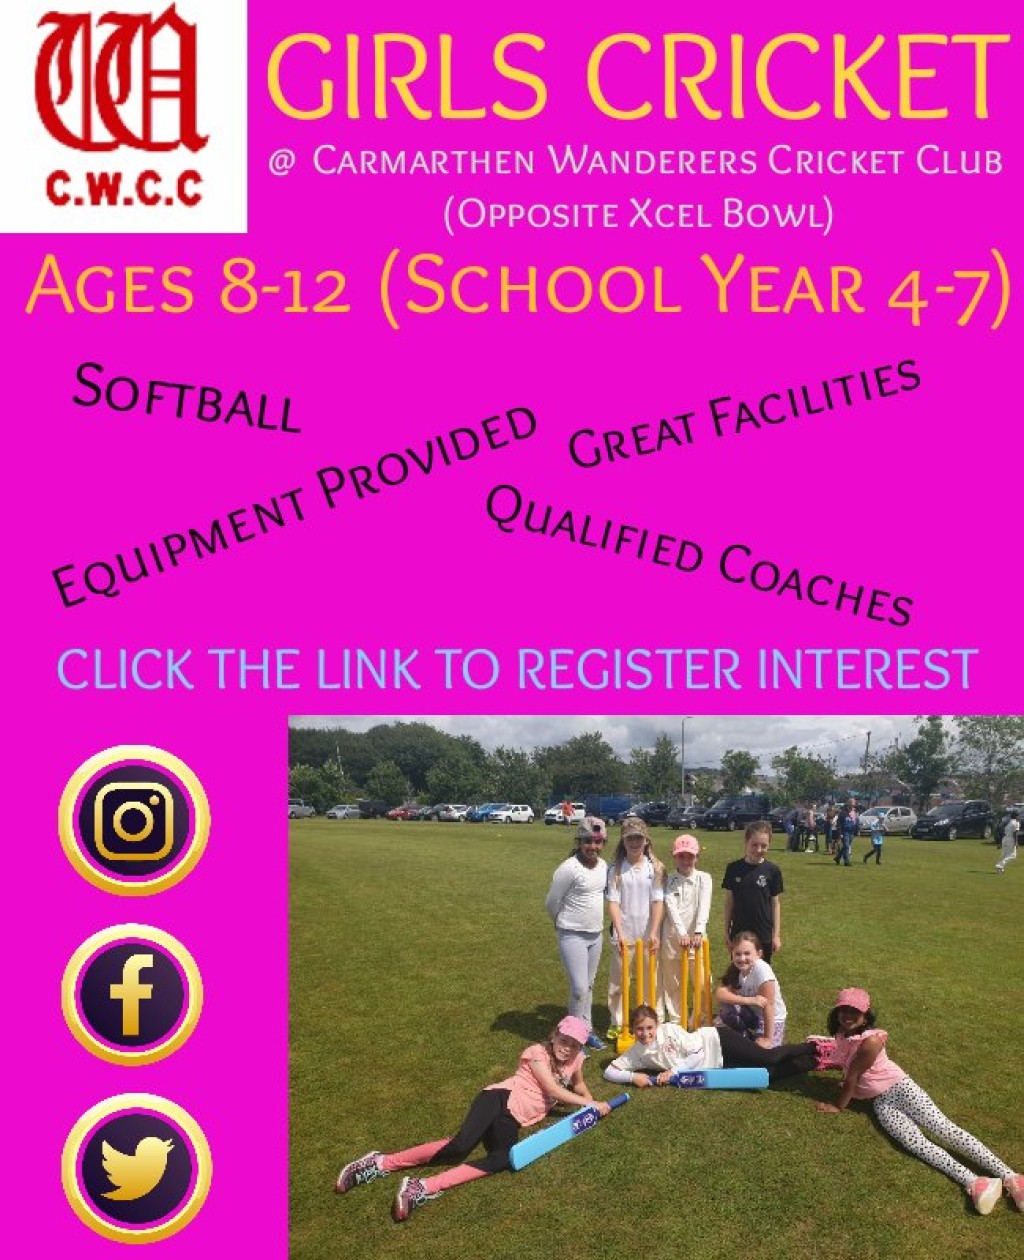 Girls Cricket is on the Up